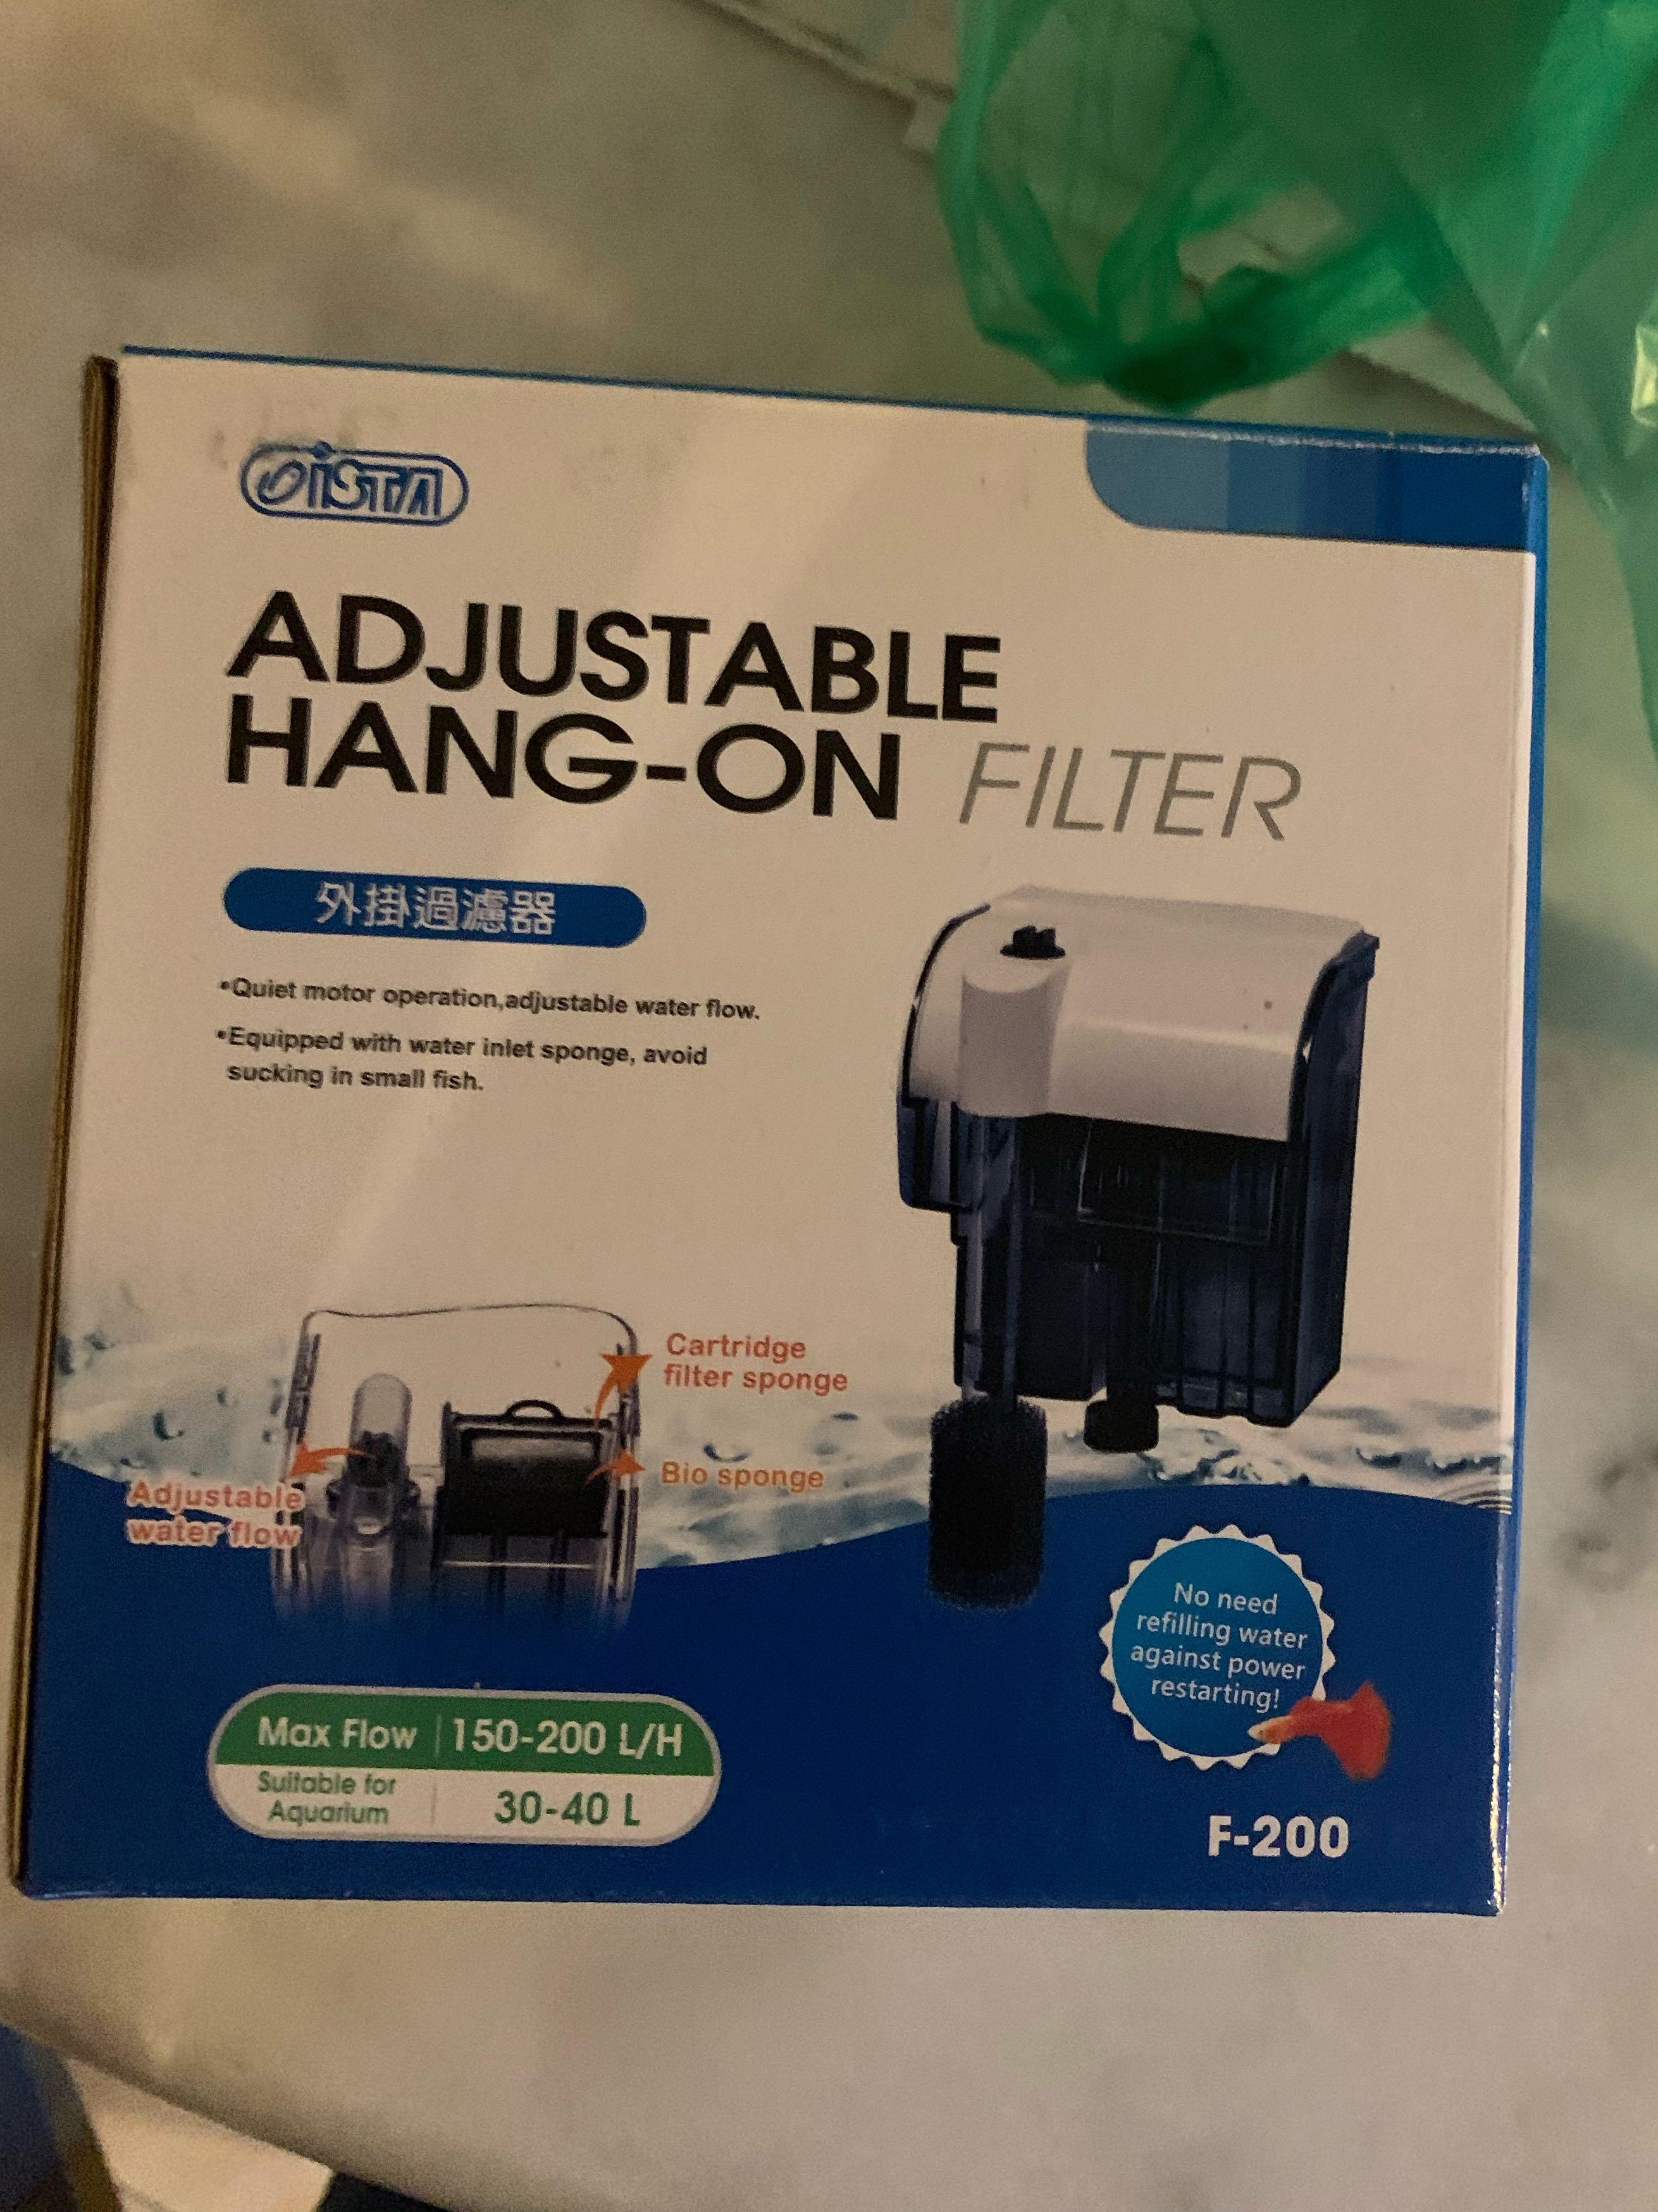 Hang-on filter